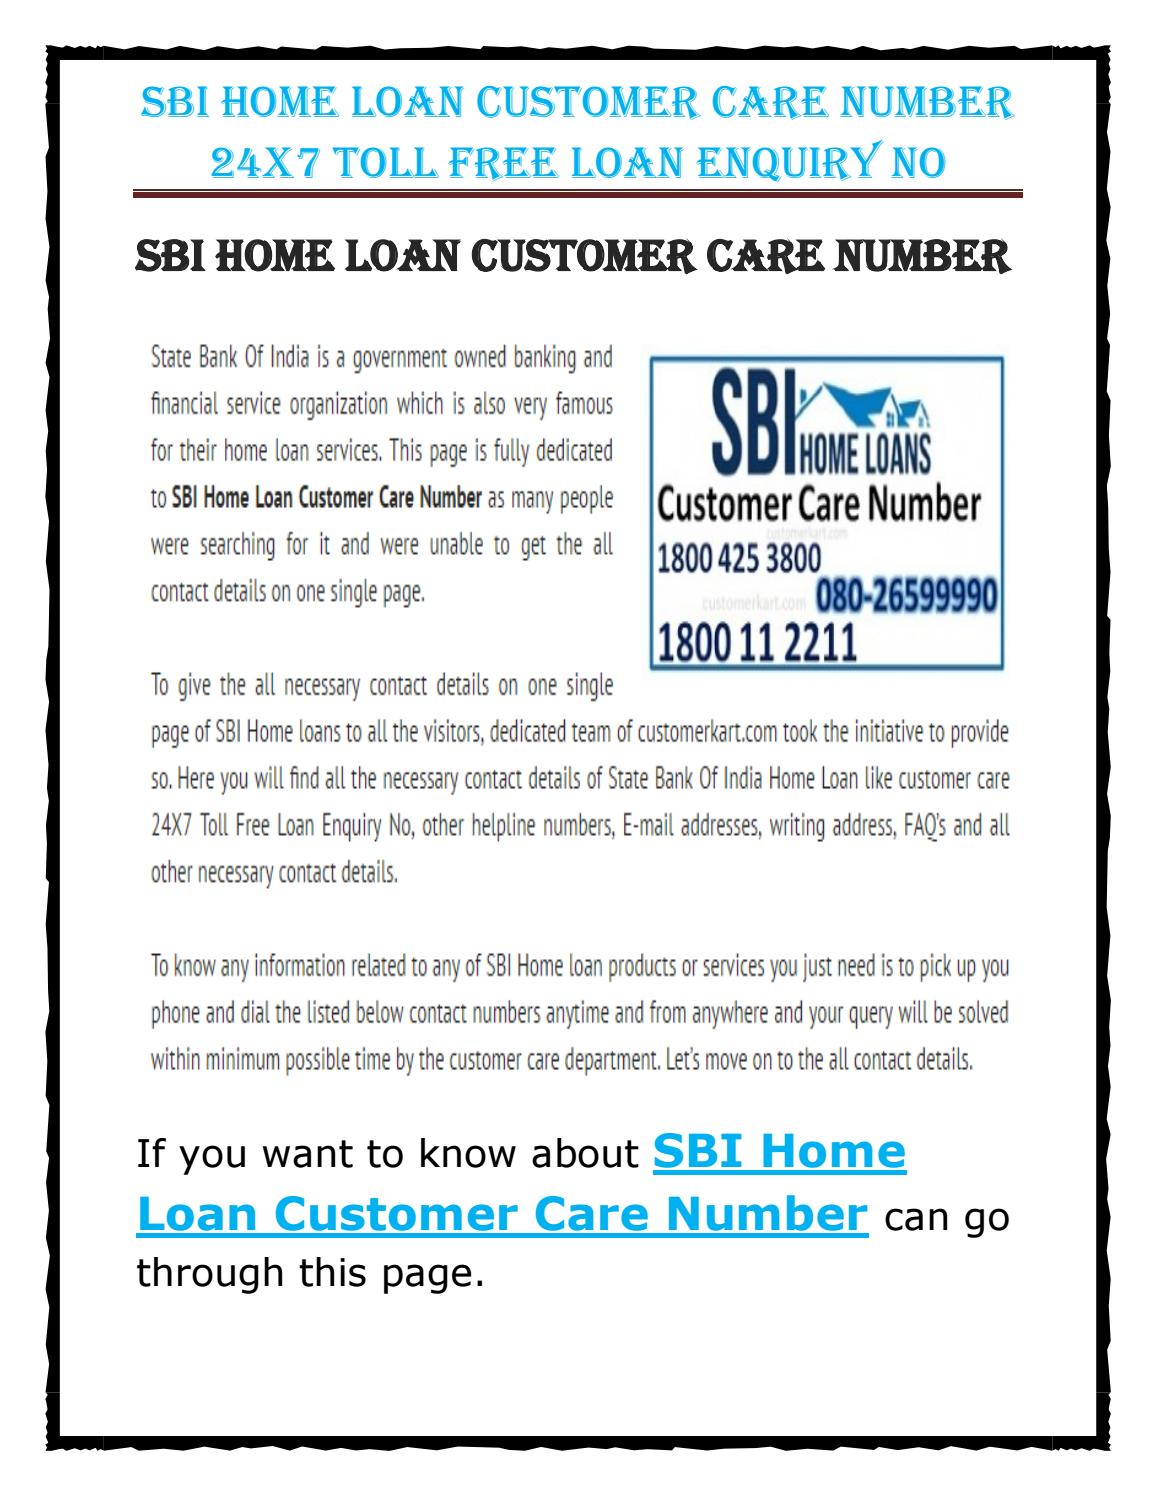 JEANNETTE: Sbi home loan customer care contact number